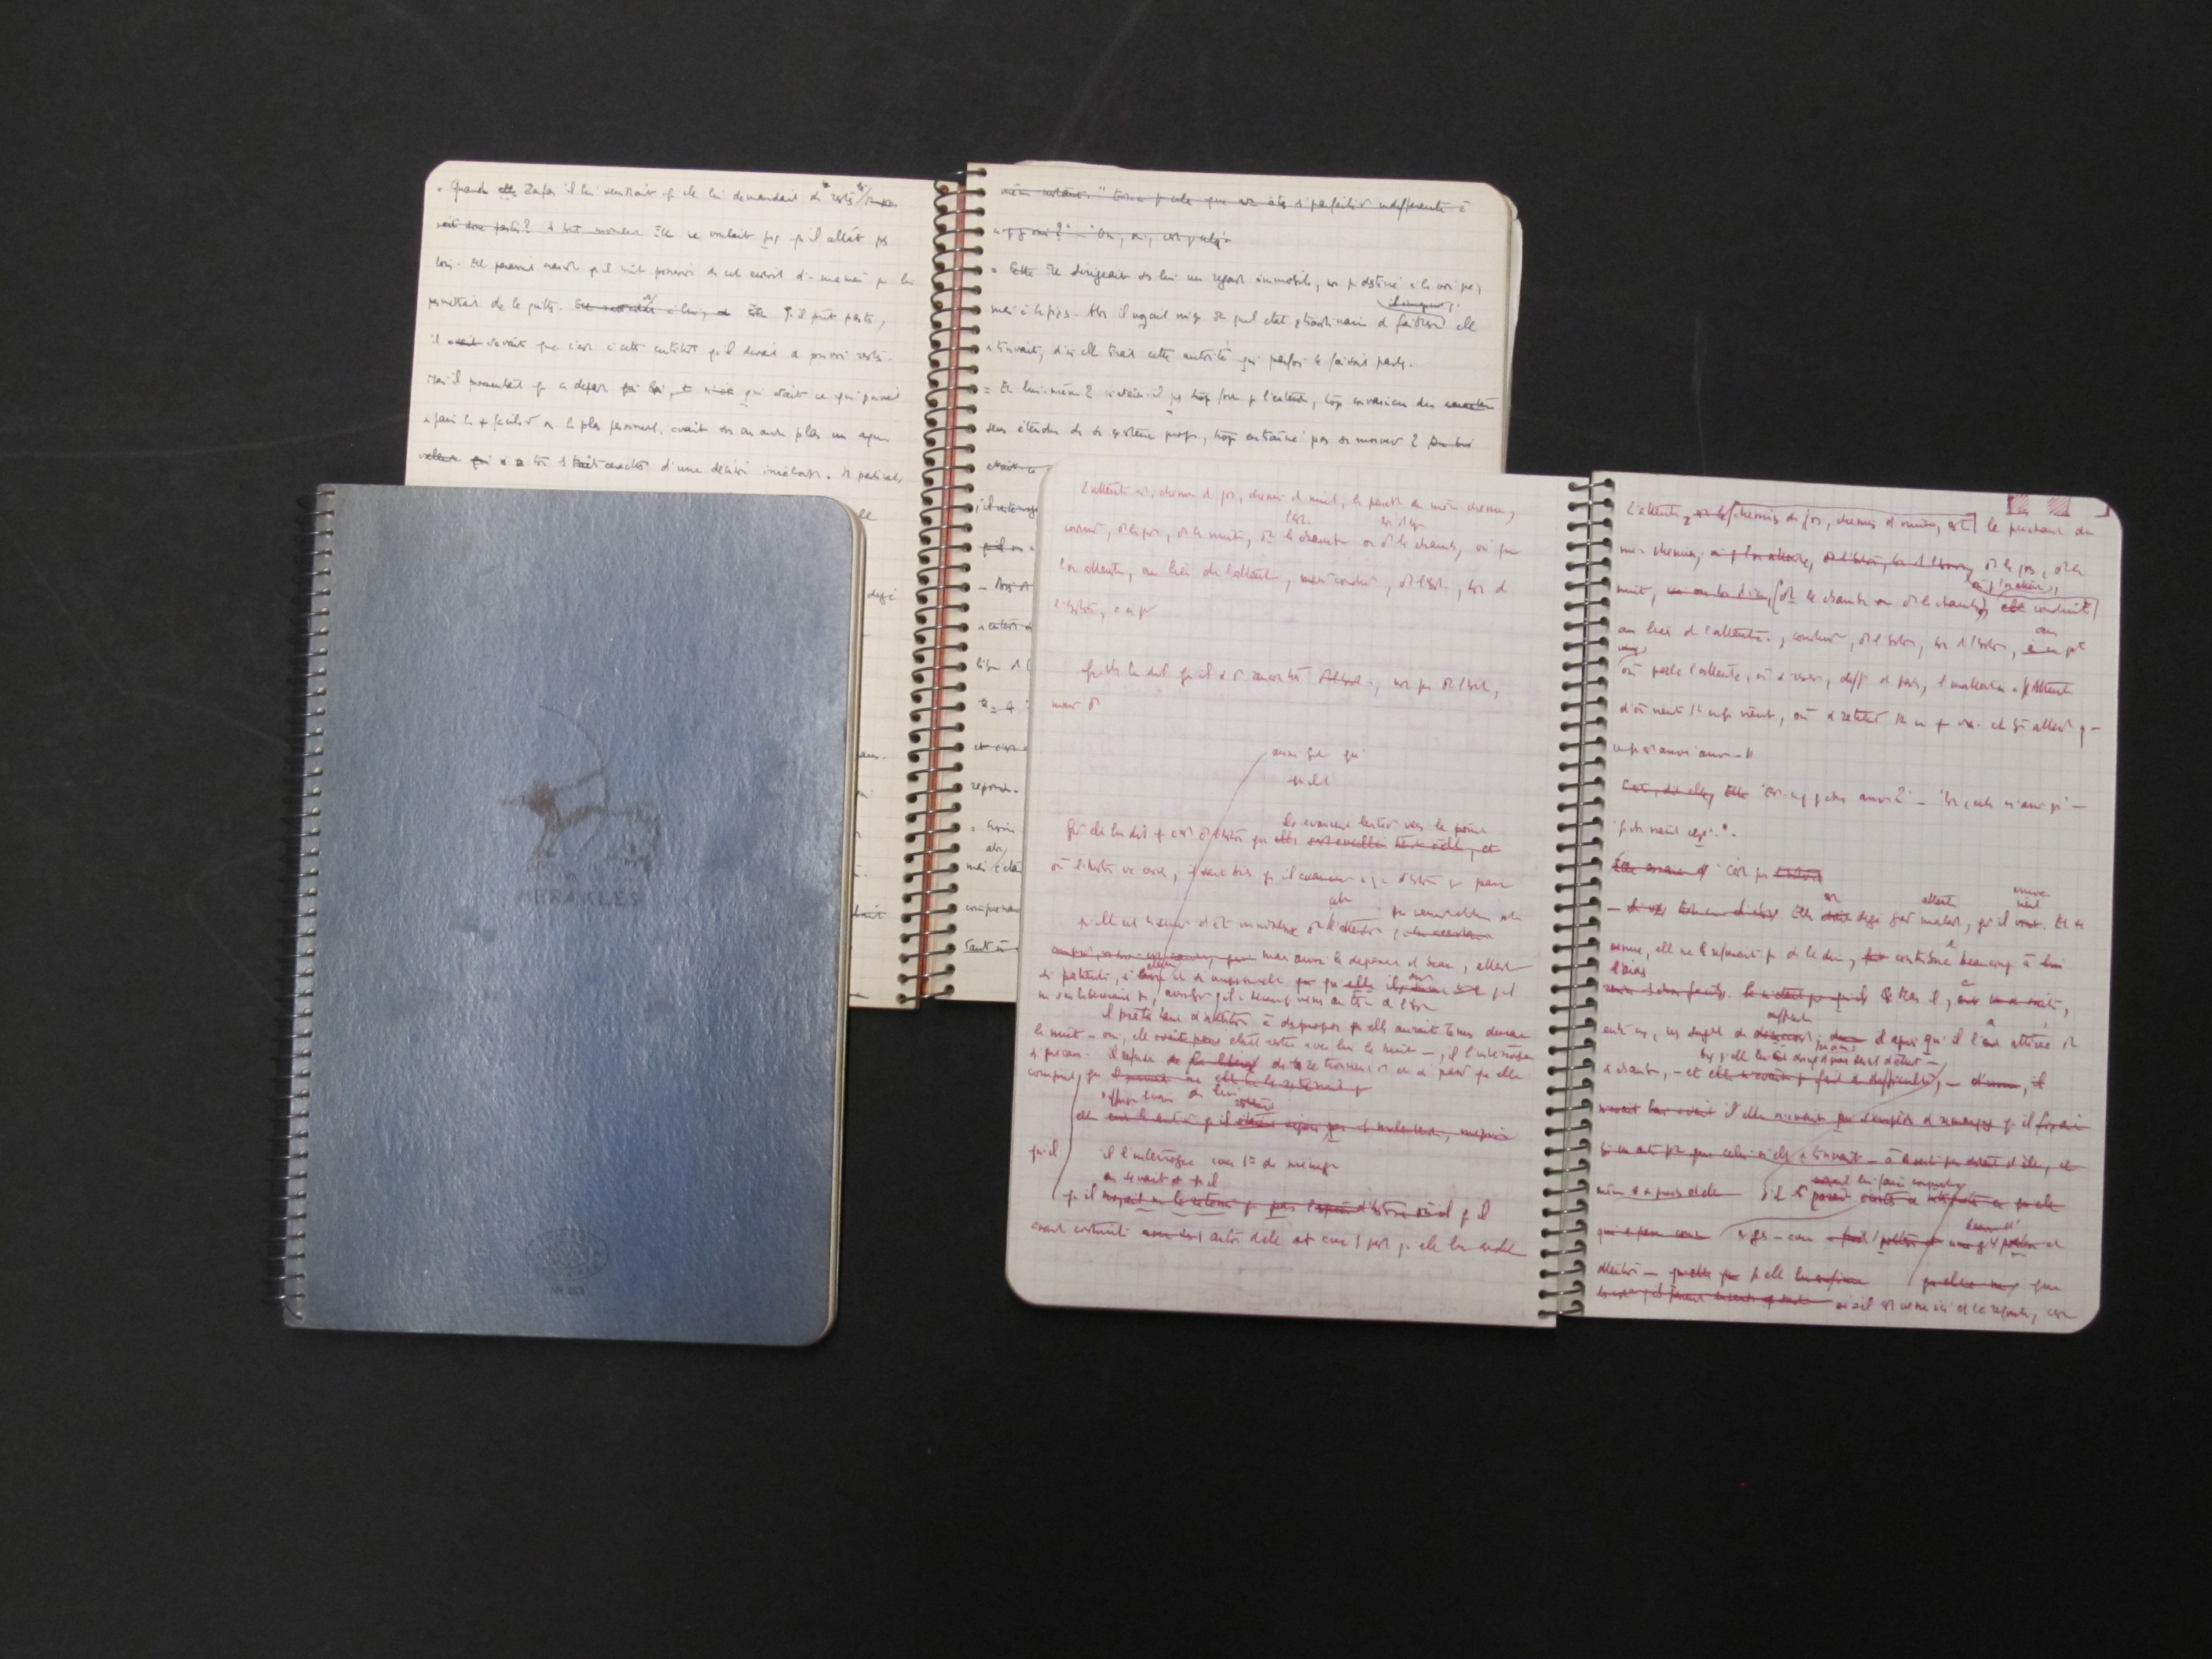 Dissertation - referencing an unpublished notebook?